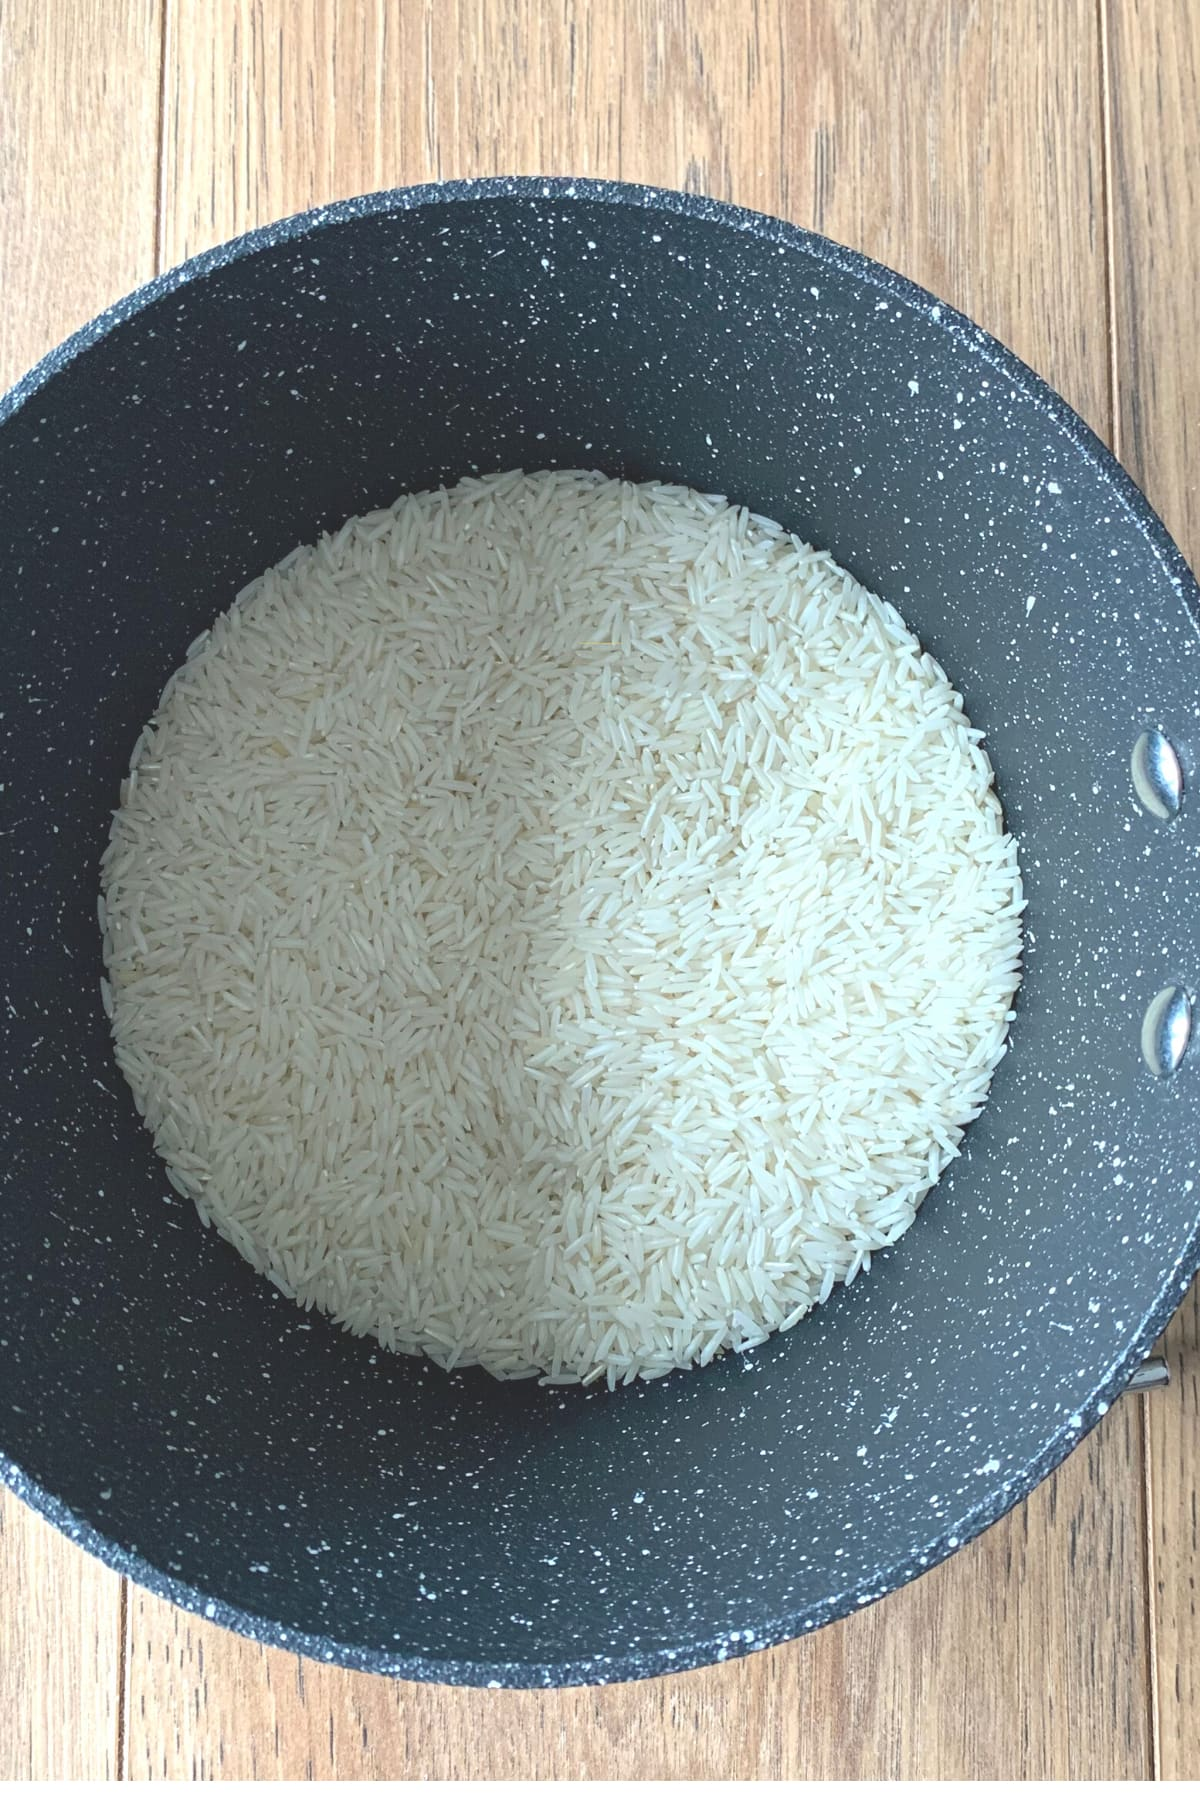 Rice in the pan